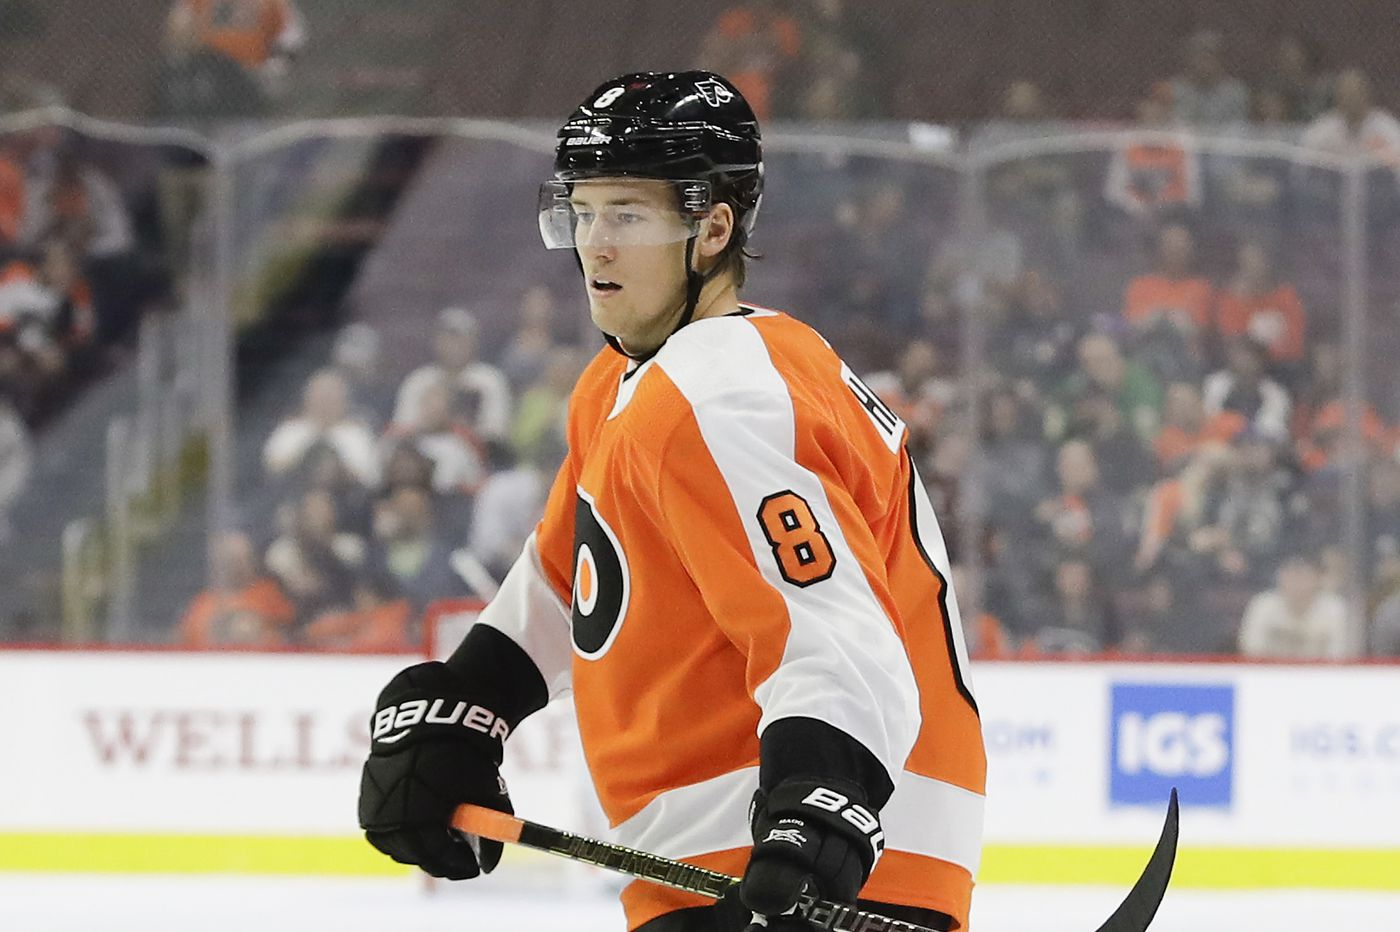 Robert Hagg, battling for spot, plays well in Flyers' preseason loss to Isles; Carter Hart shines